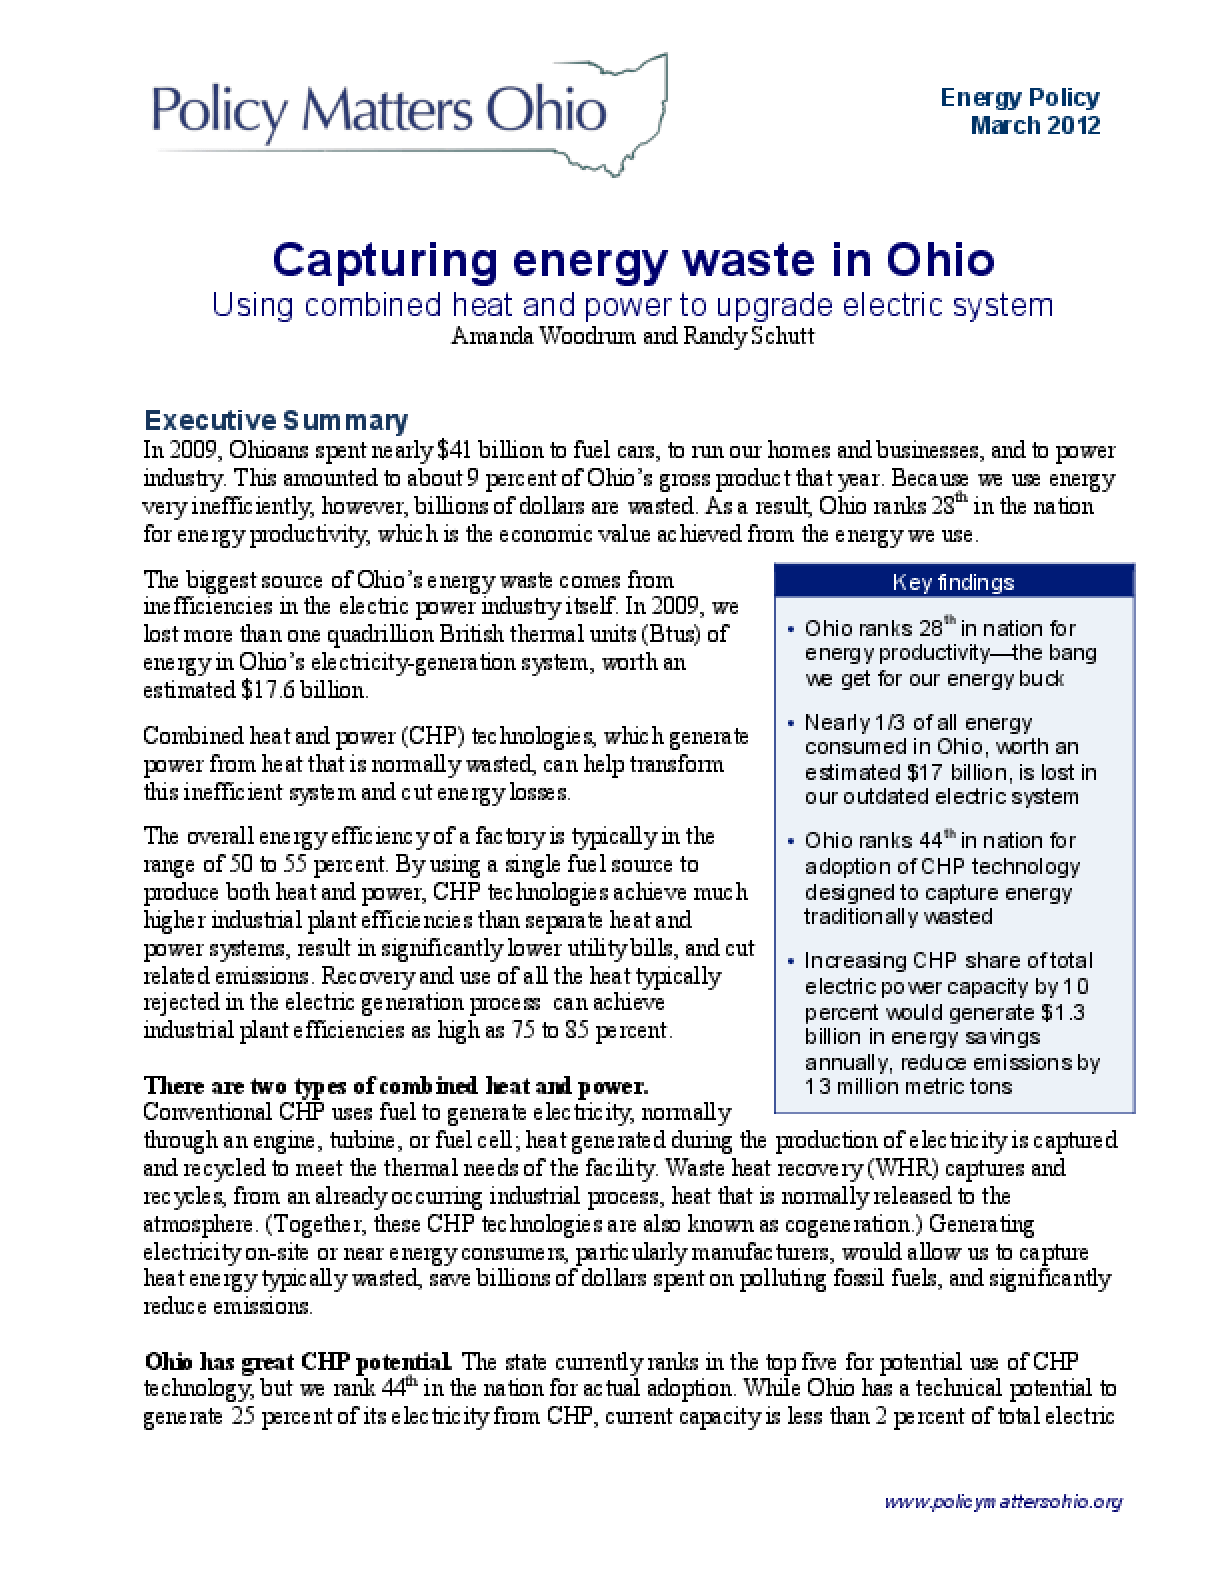 Capturing Energy Waste in Ohio: Using Combined Heat and Power to Upgrade Our Electric System